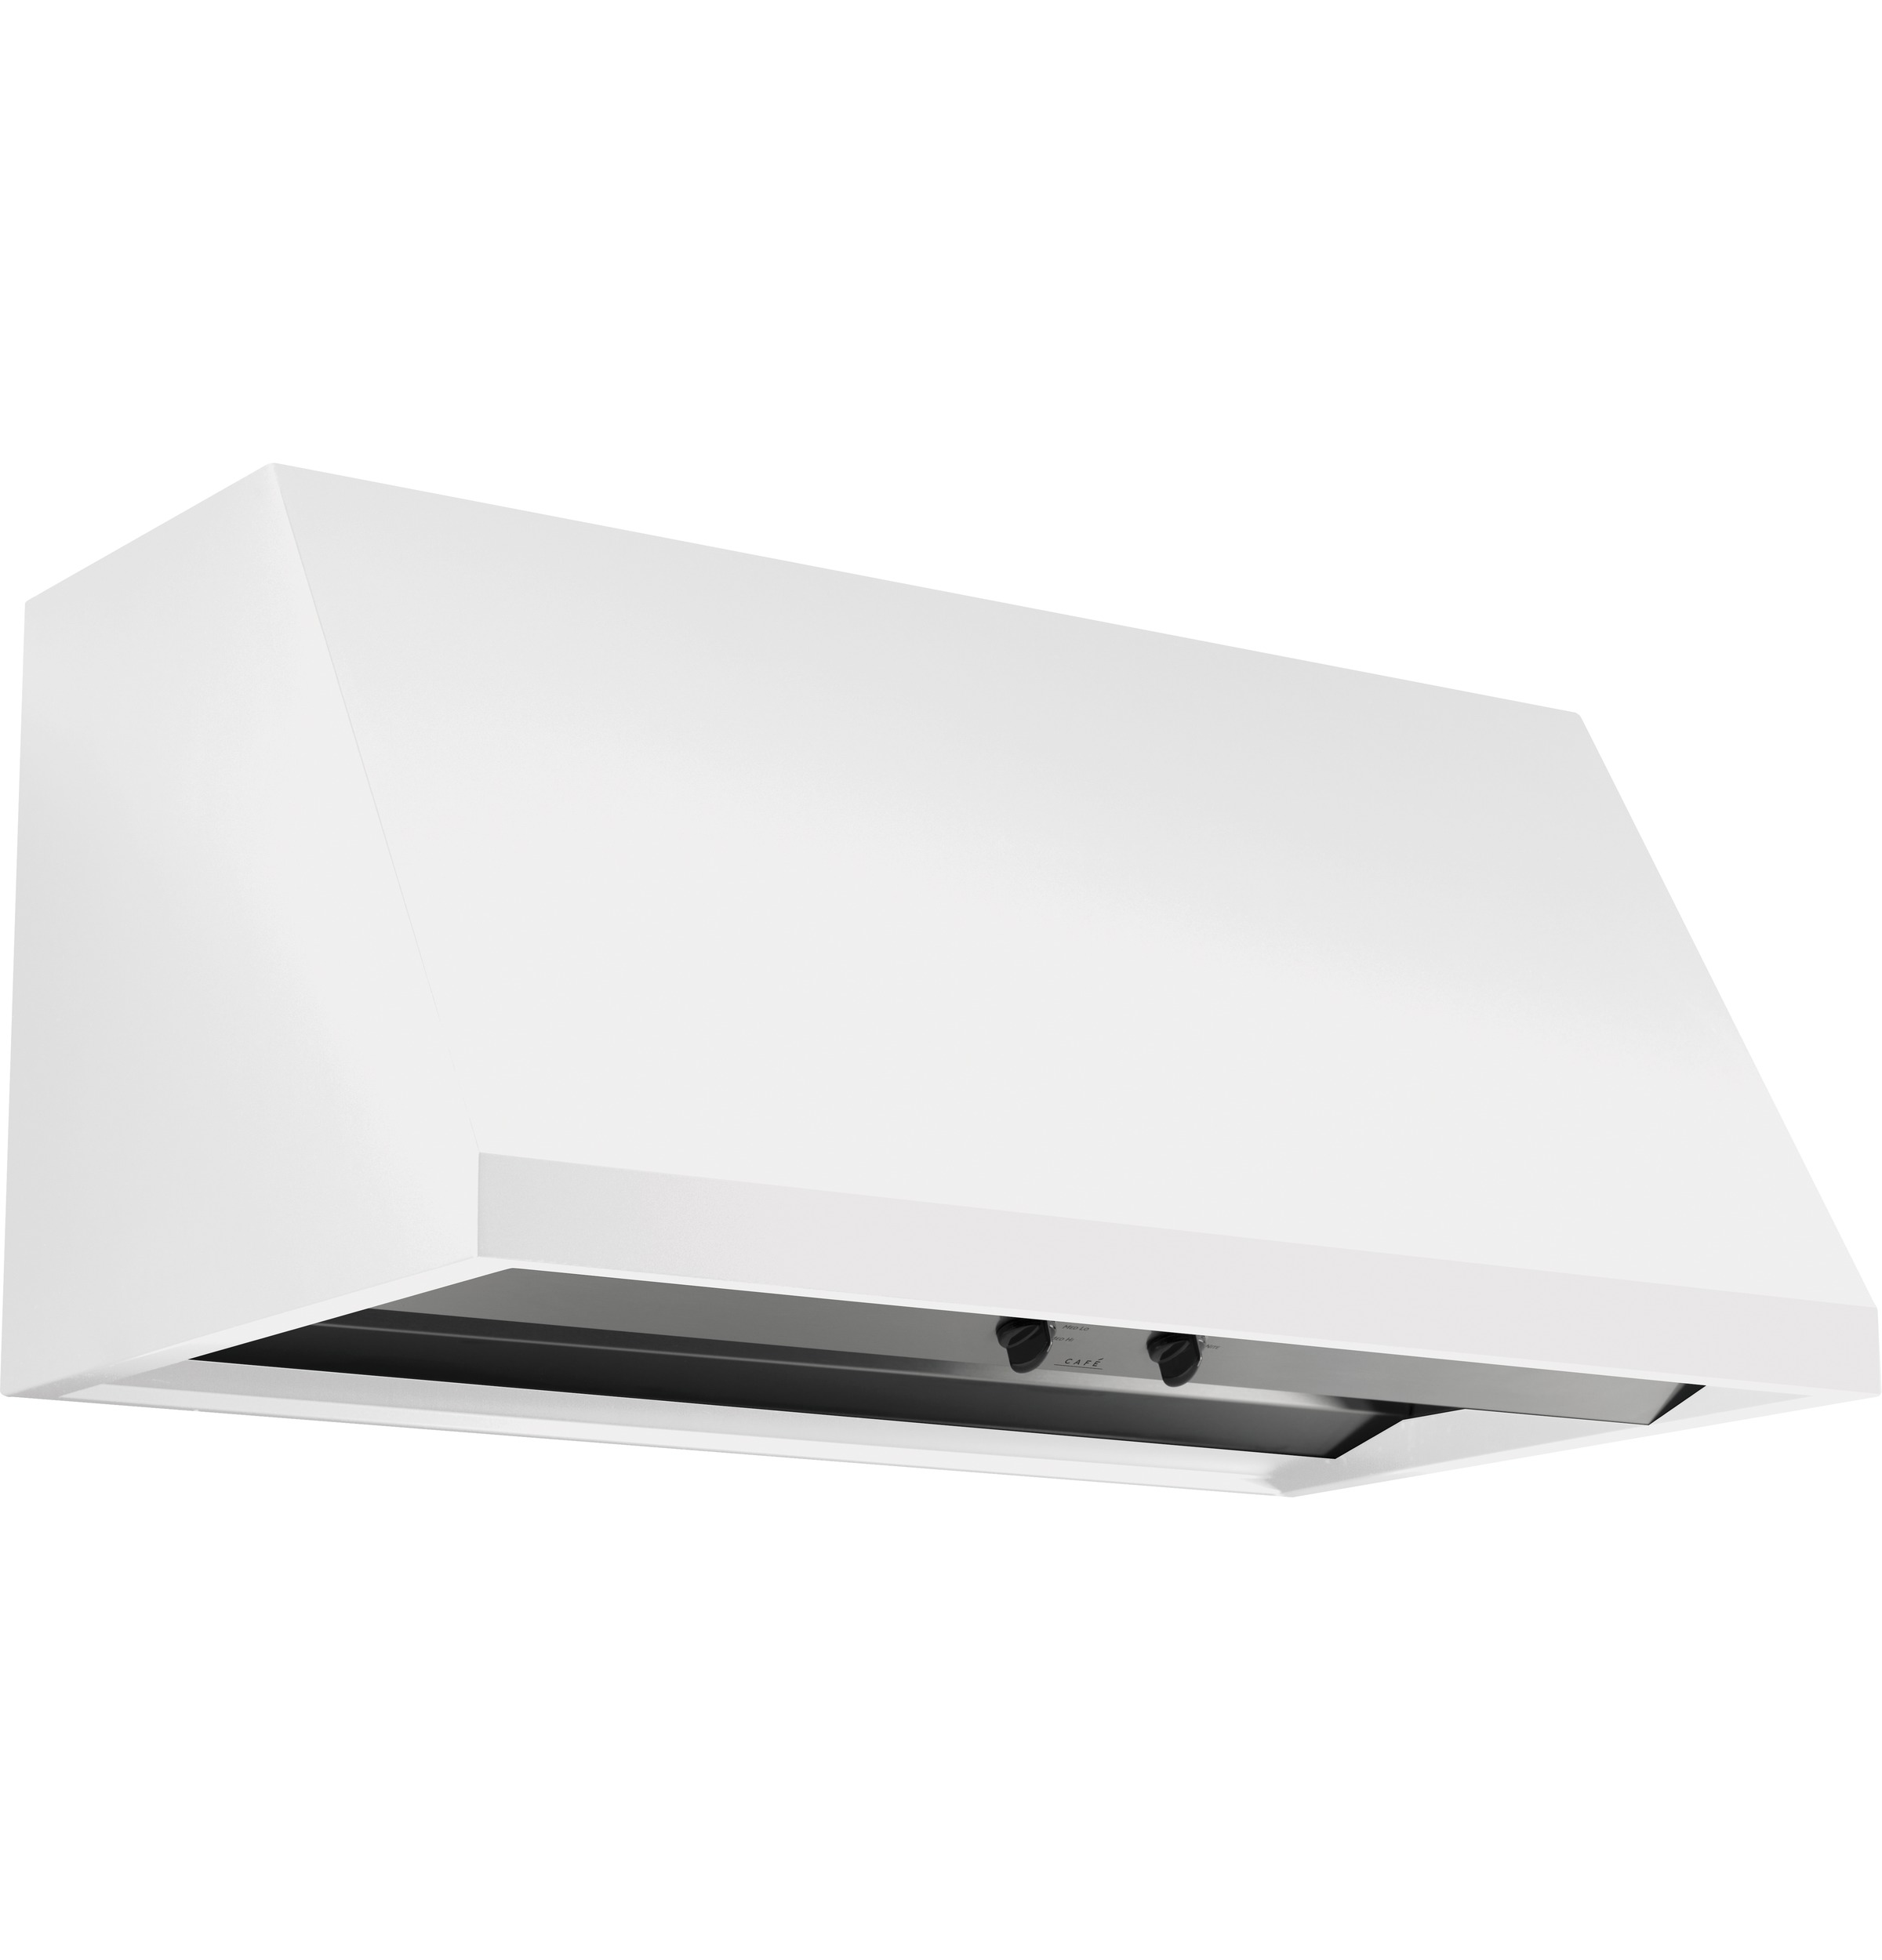 "Model: CVW93614MWM | Cafe Café™ 36"" Commercial-Style Hood"